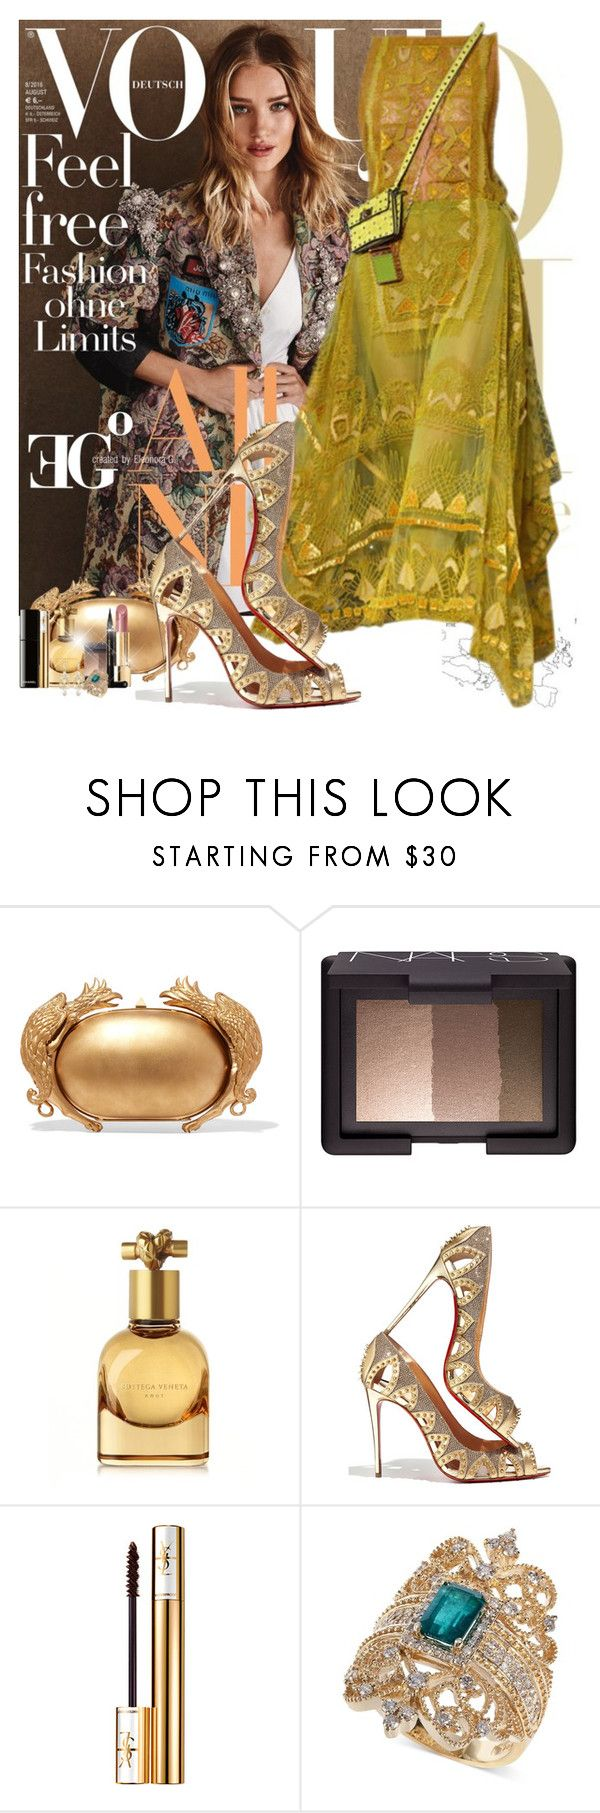 """Cirque de Soleil in Saint Tropez"" by eleonoragocevska ❤ liked on Polyvore featuring Whiteley, Valentino, NARS Cosmetics, Bottega Veneta, Christian Louboutin, Yves Saint Laurent, Chanel, Effy Jewelry and Alexis Bittar"